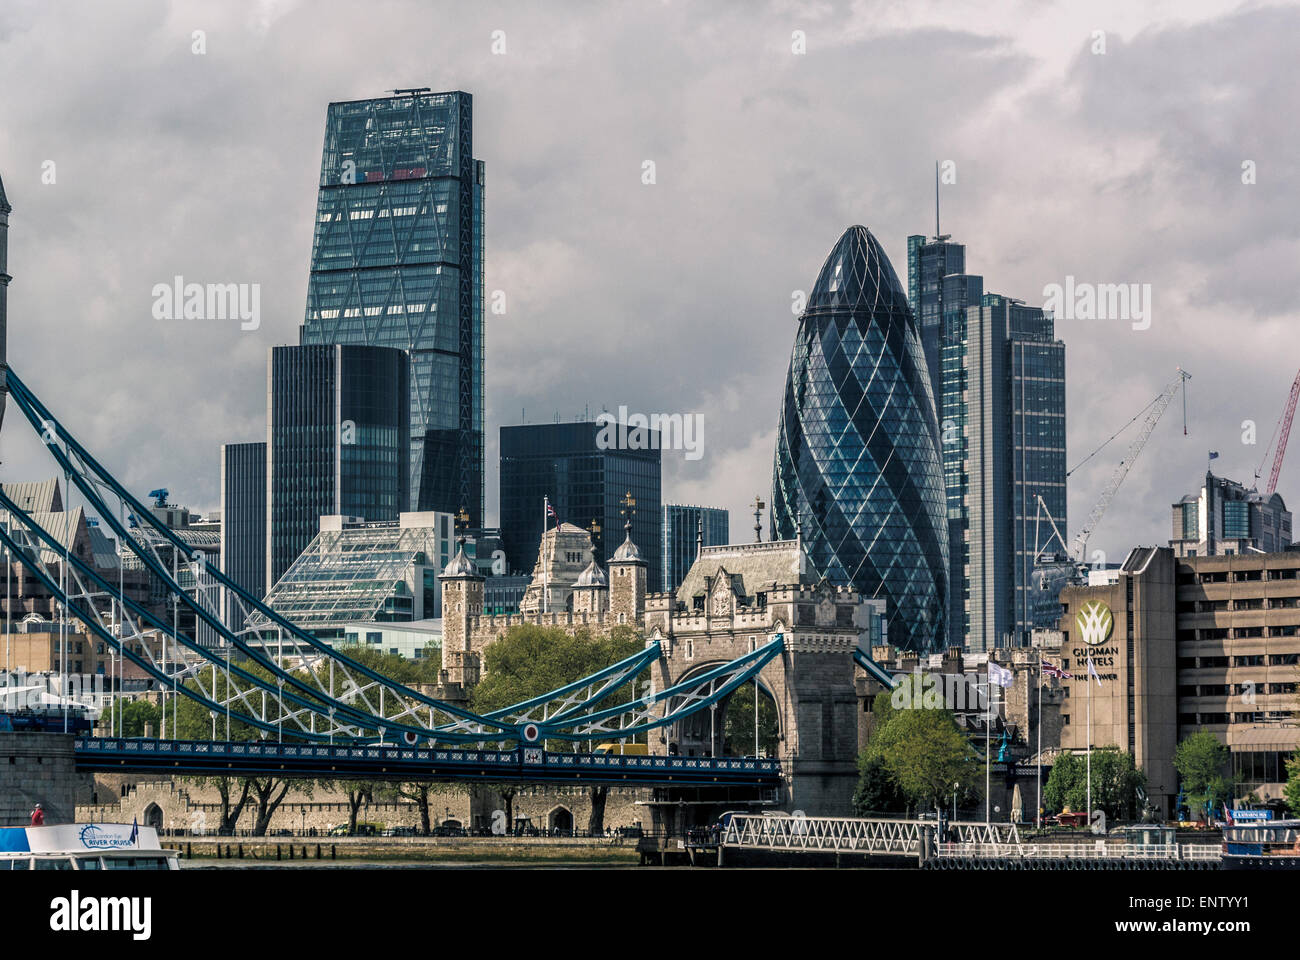 The Gherkin, cheesegrater and Heron Tower viewed from south side of river Thames at Tower Bridge - Stock Image